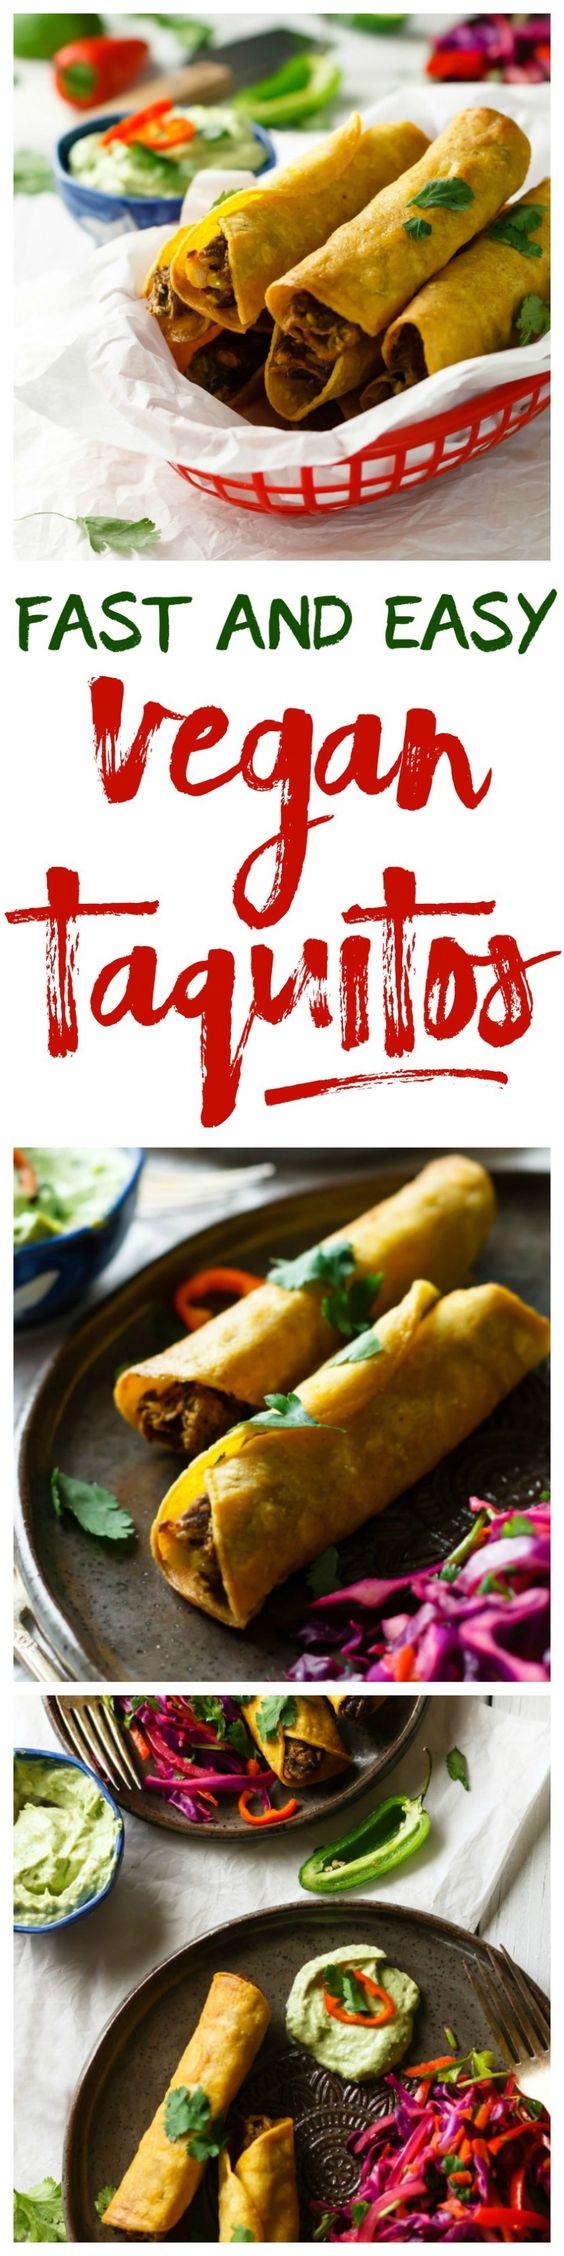 Easy Vegan Taquitos with Avocado Mayo and Mexican Slaw